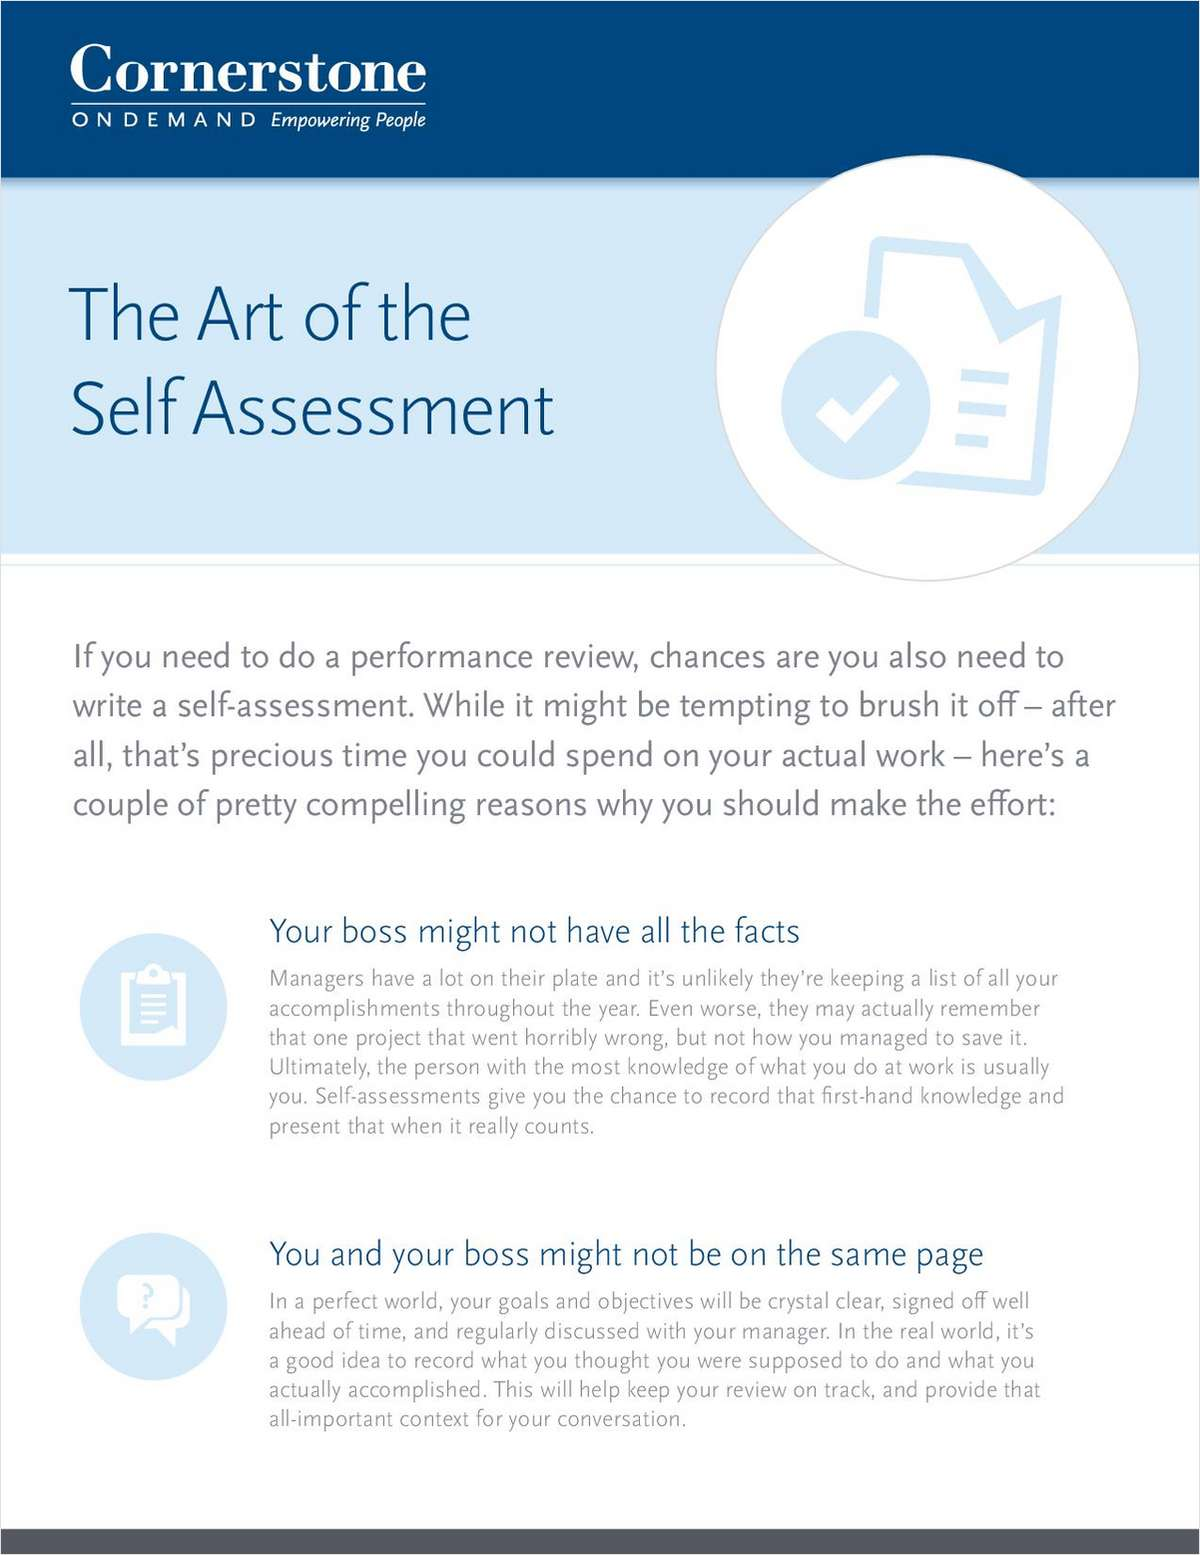 The Art of the Self-Assessment